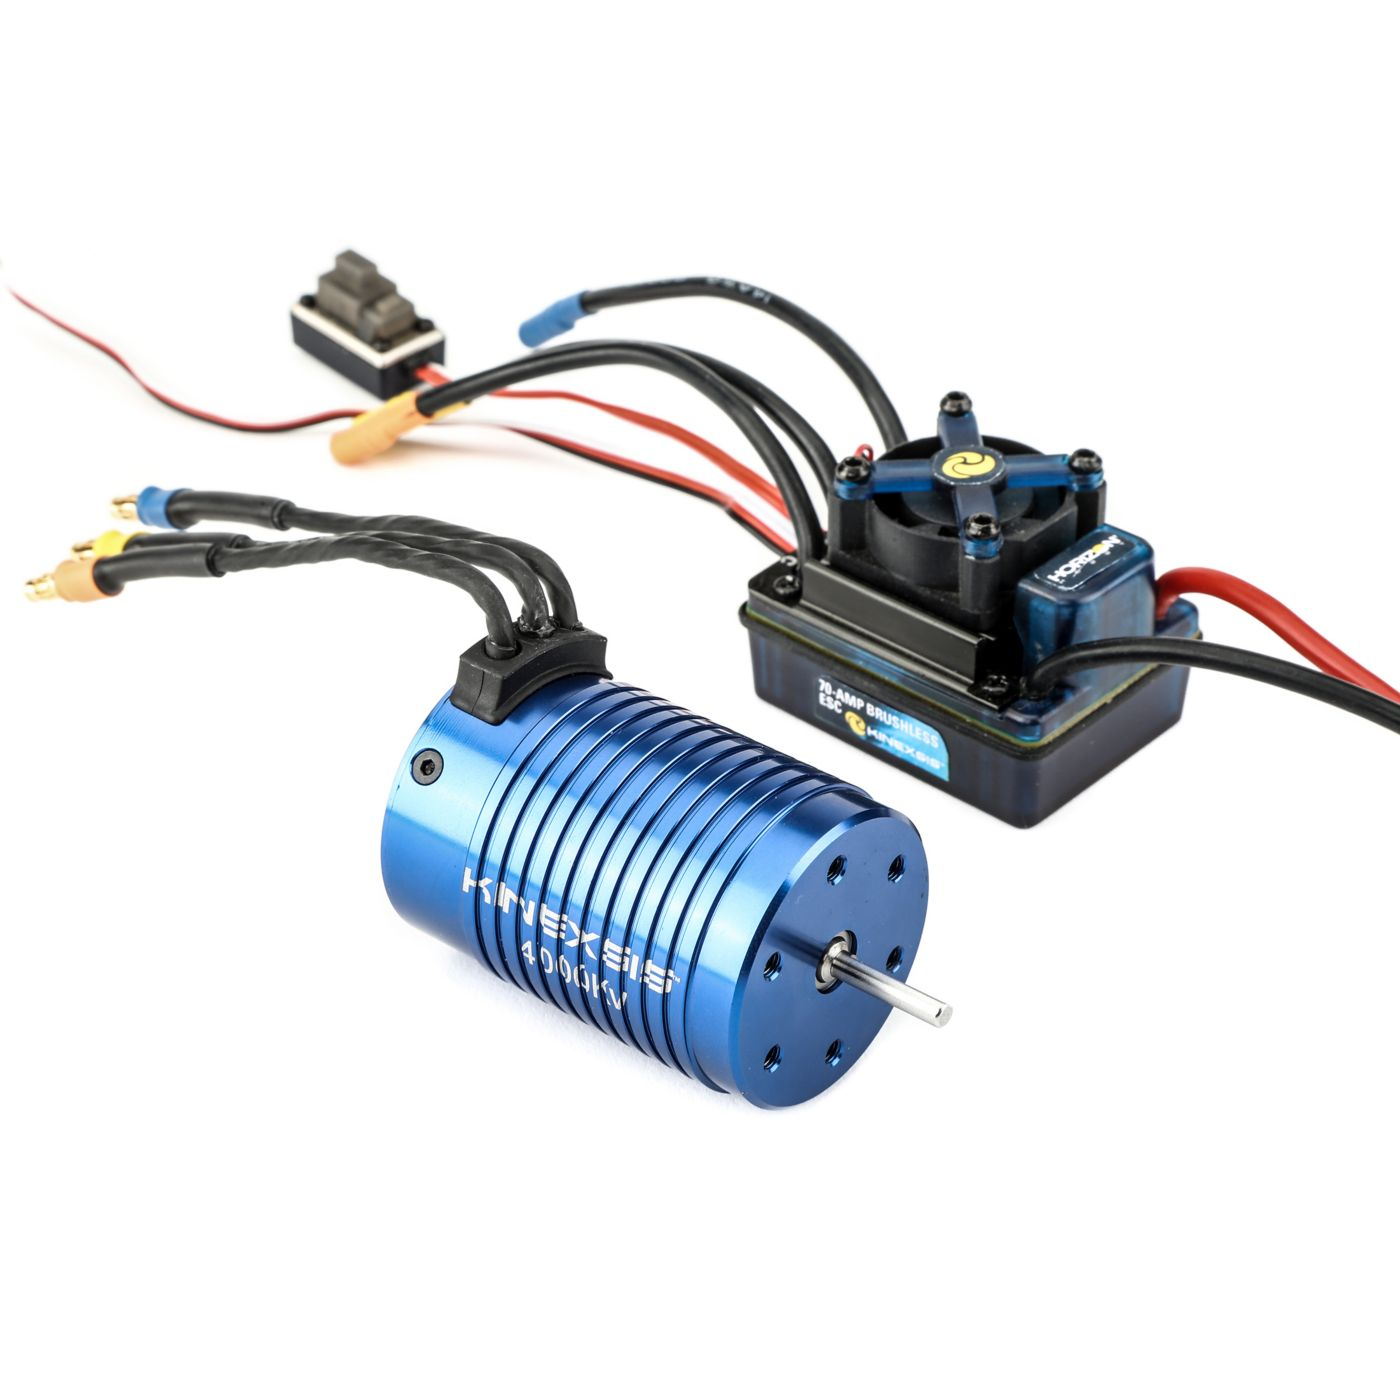 small resolution of 1 10 4 pole 4000kv esc motor combo horizonhobby north american edition electrical wiring harness with eicv escv